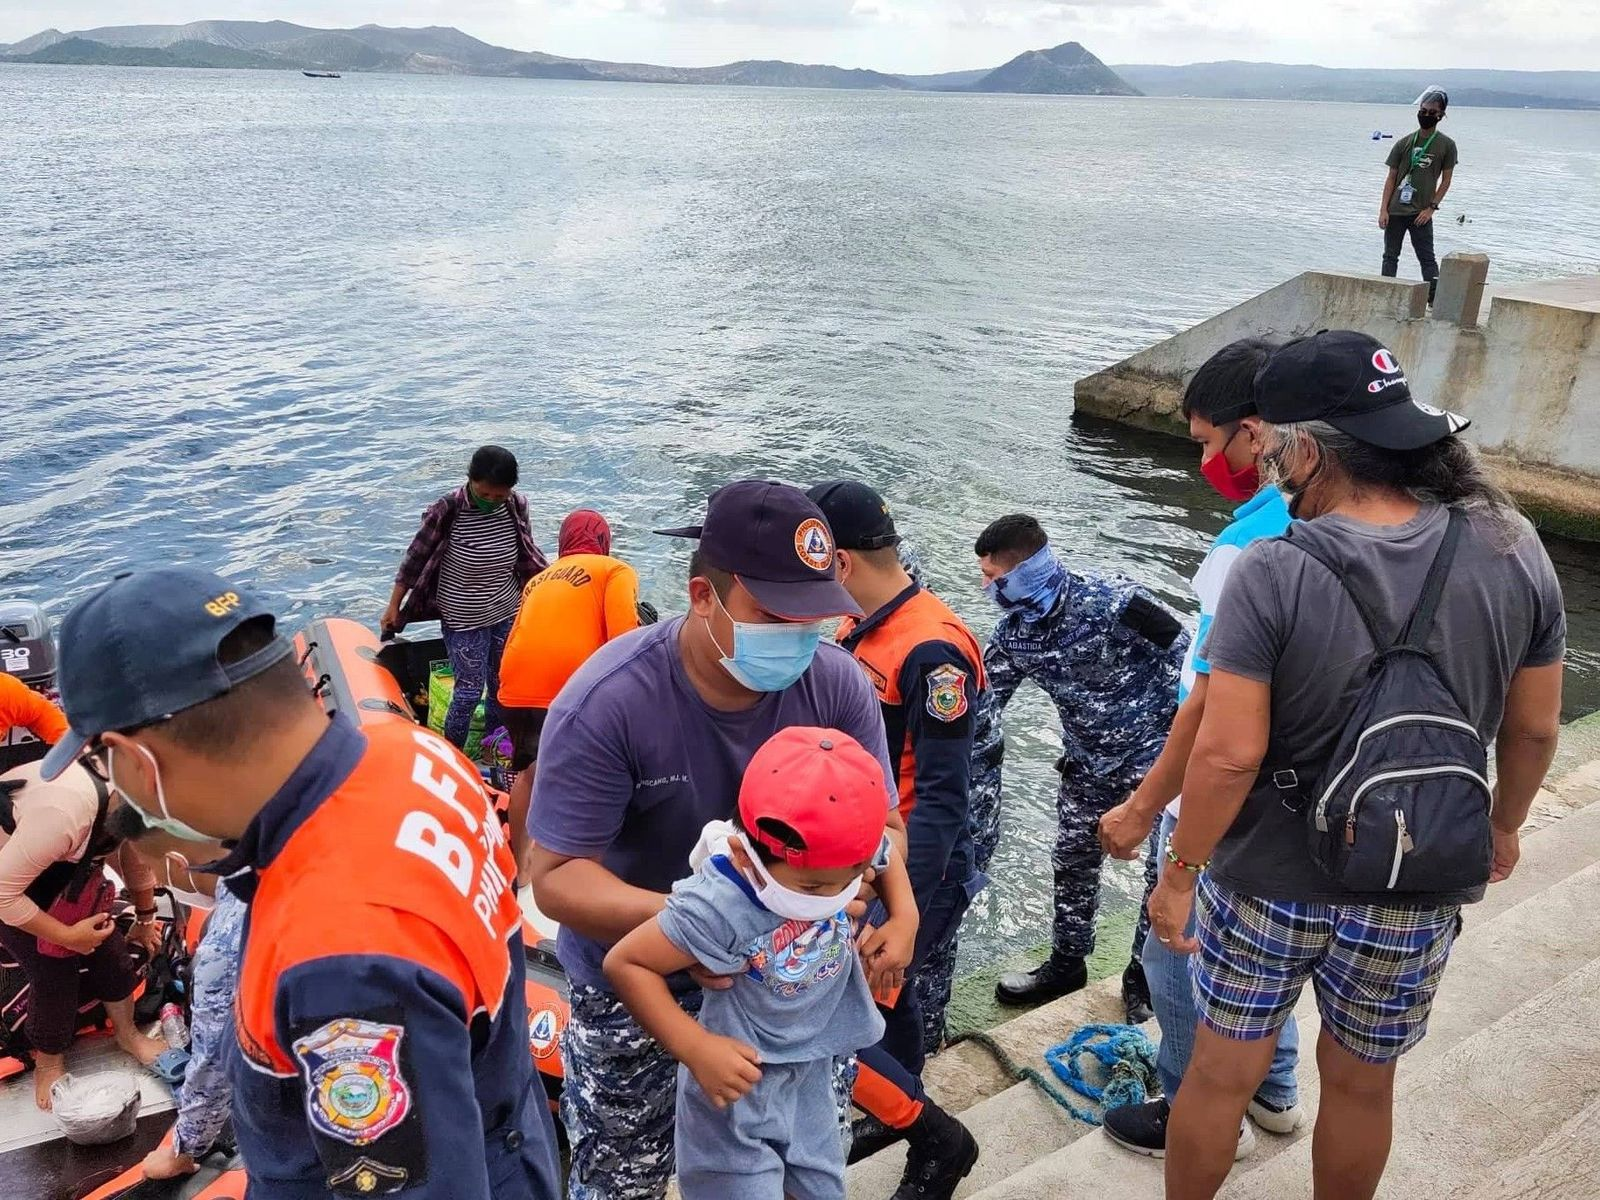 Taal - 02.16.2021 - evacuation of the inhabitants of the central island with the help of the Coast Guards - doc. via Philstar